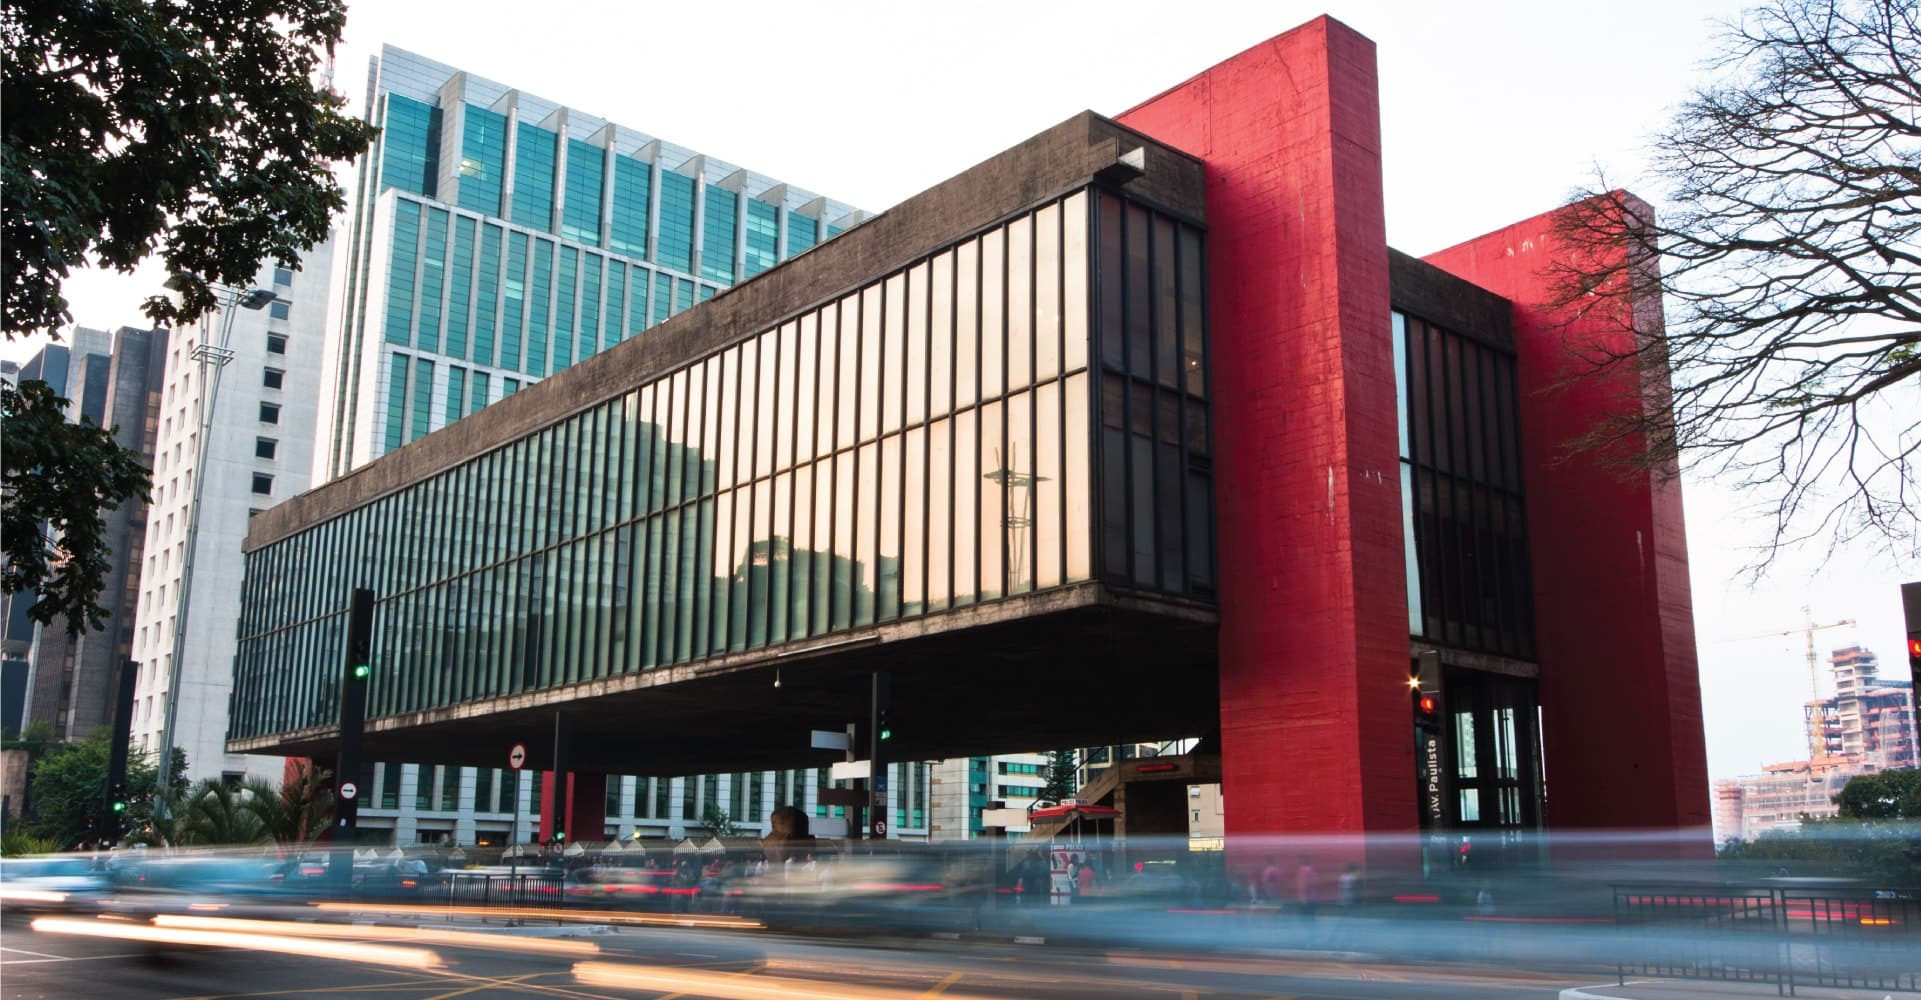 exterior of entire masp museum, glass box with red pillars